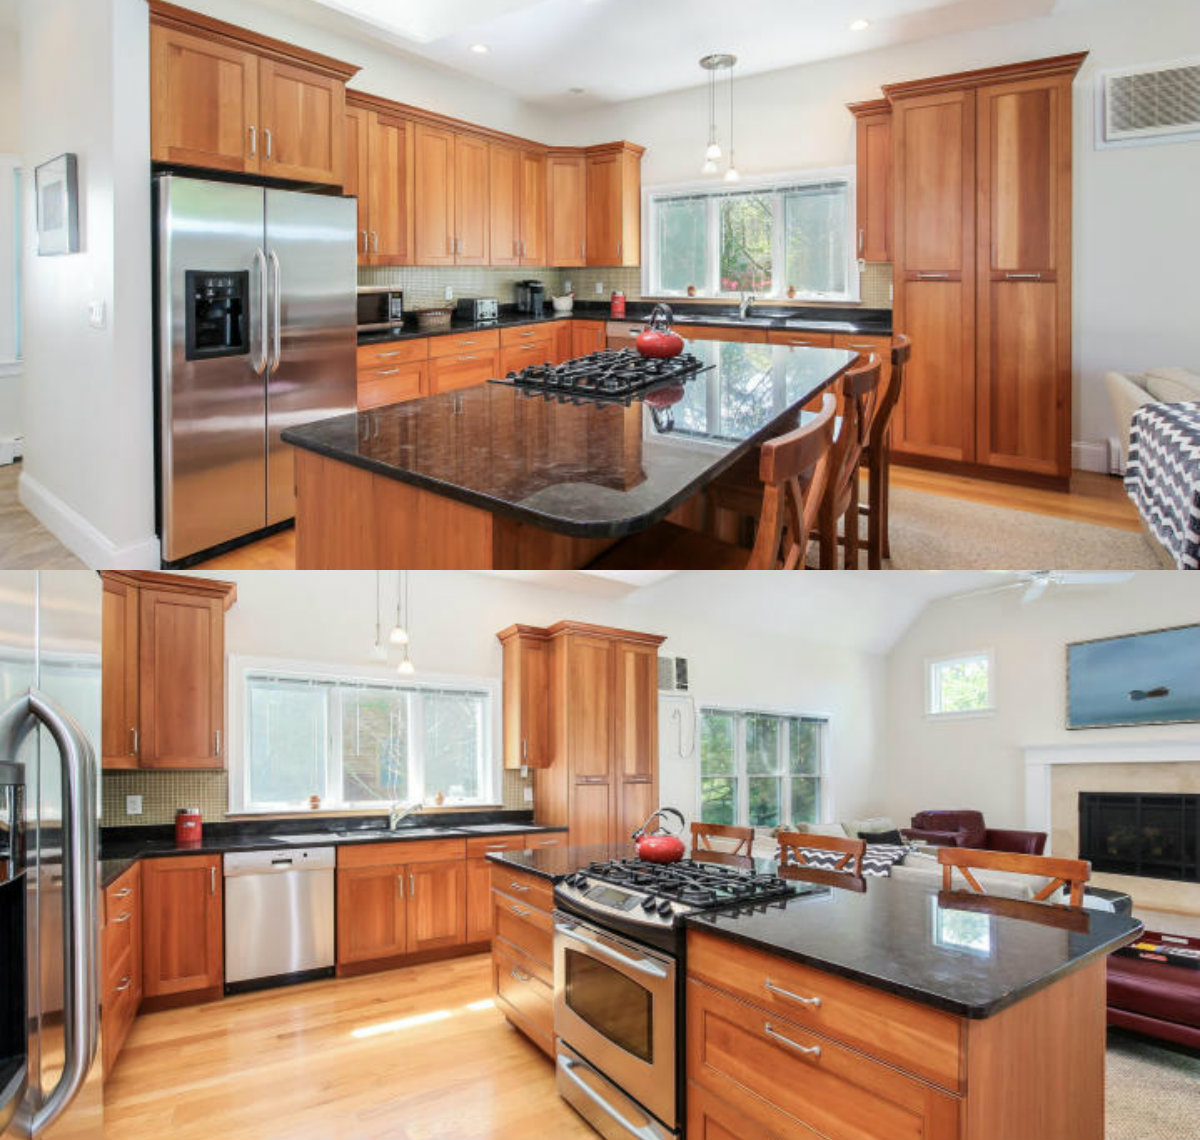 Images of kitchen at 40 Flying Mist Lane in Brewster Cape Cod MA